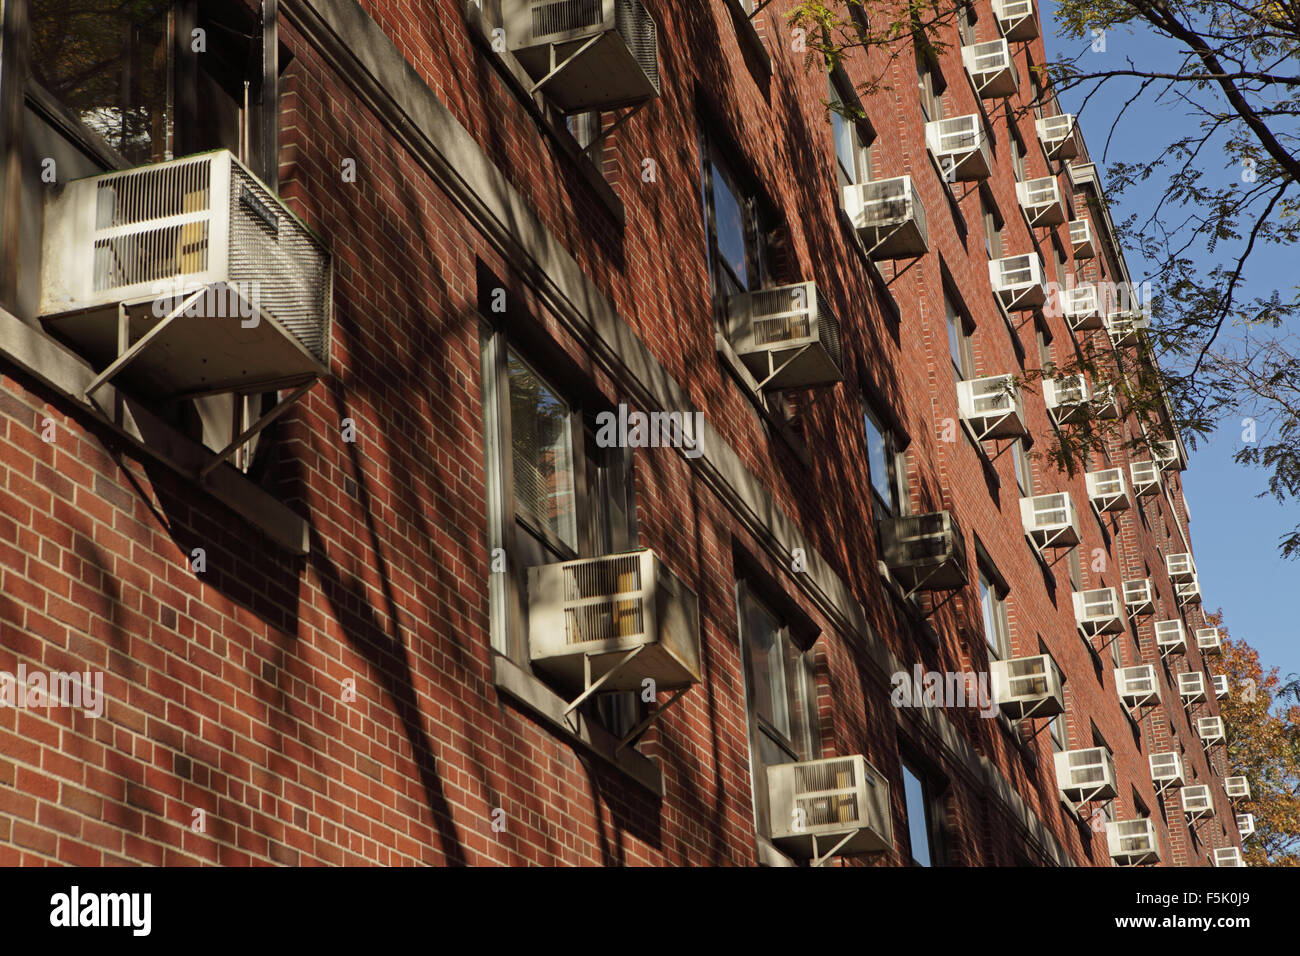 Hundreds of window air conditioning units in a Brooklyn building - Stock Image